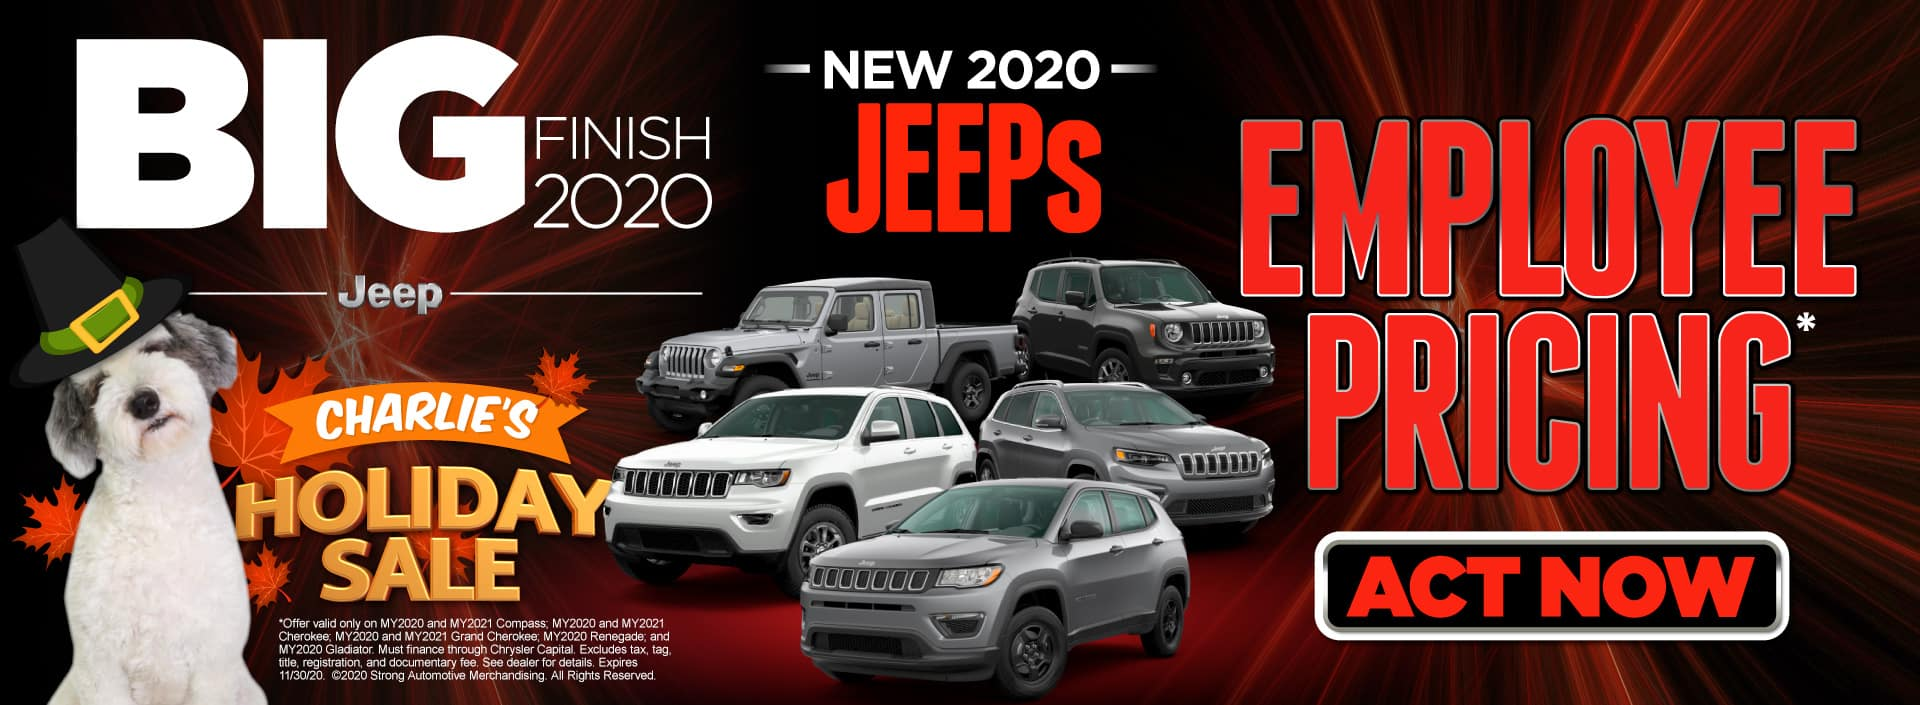 Employee Pricing on Select Jeeps | Act Now